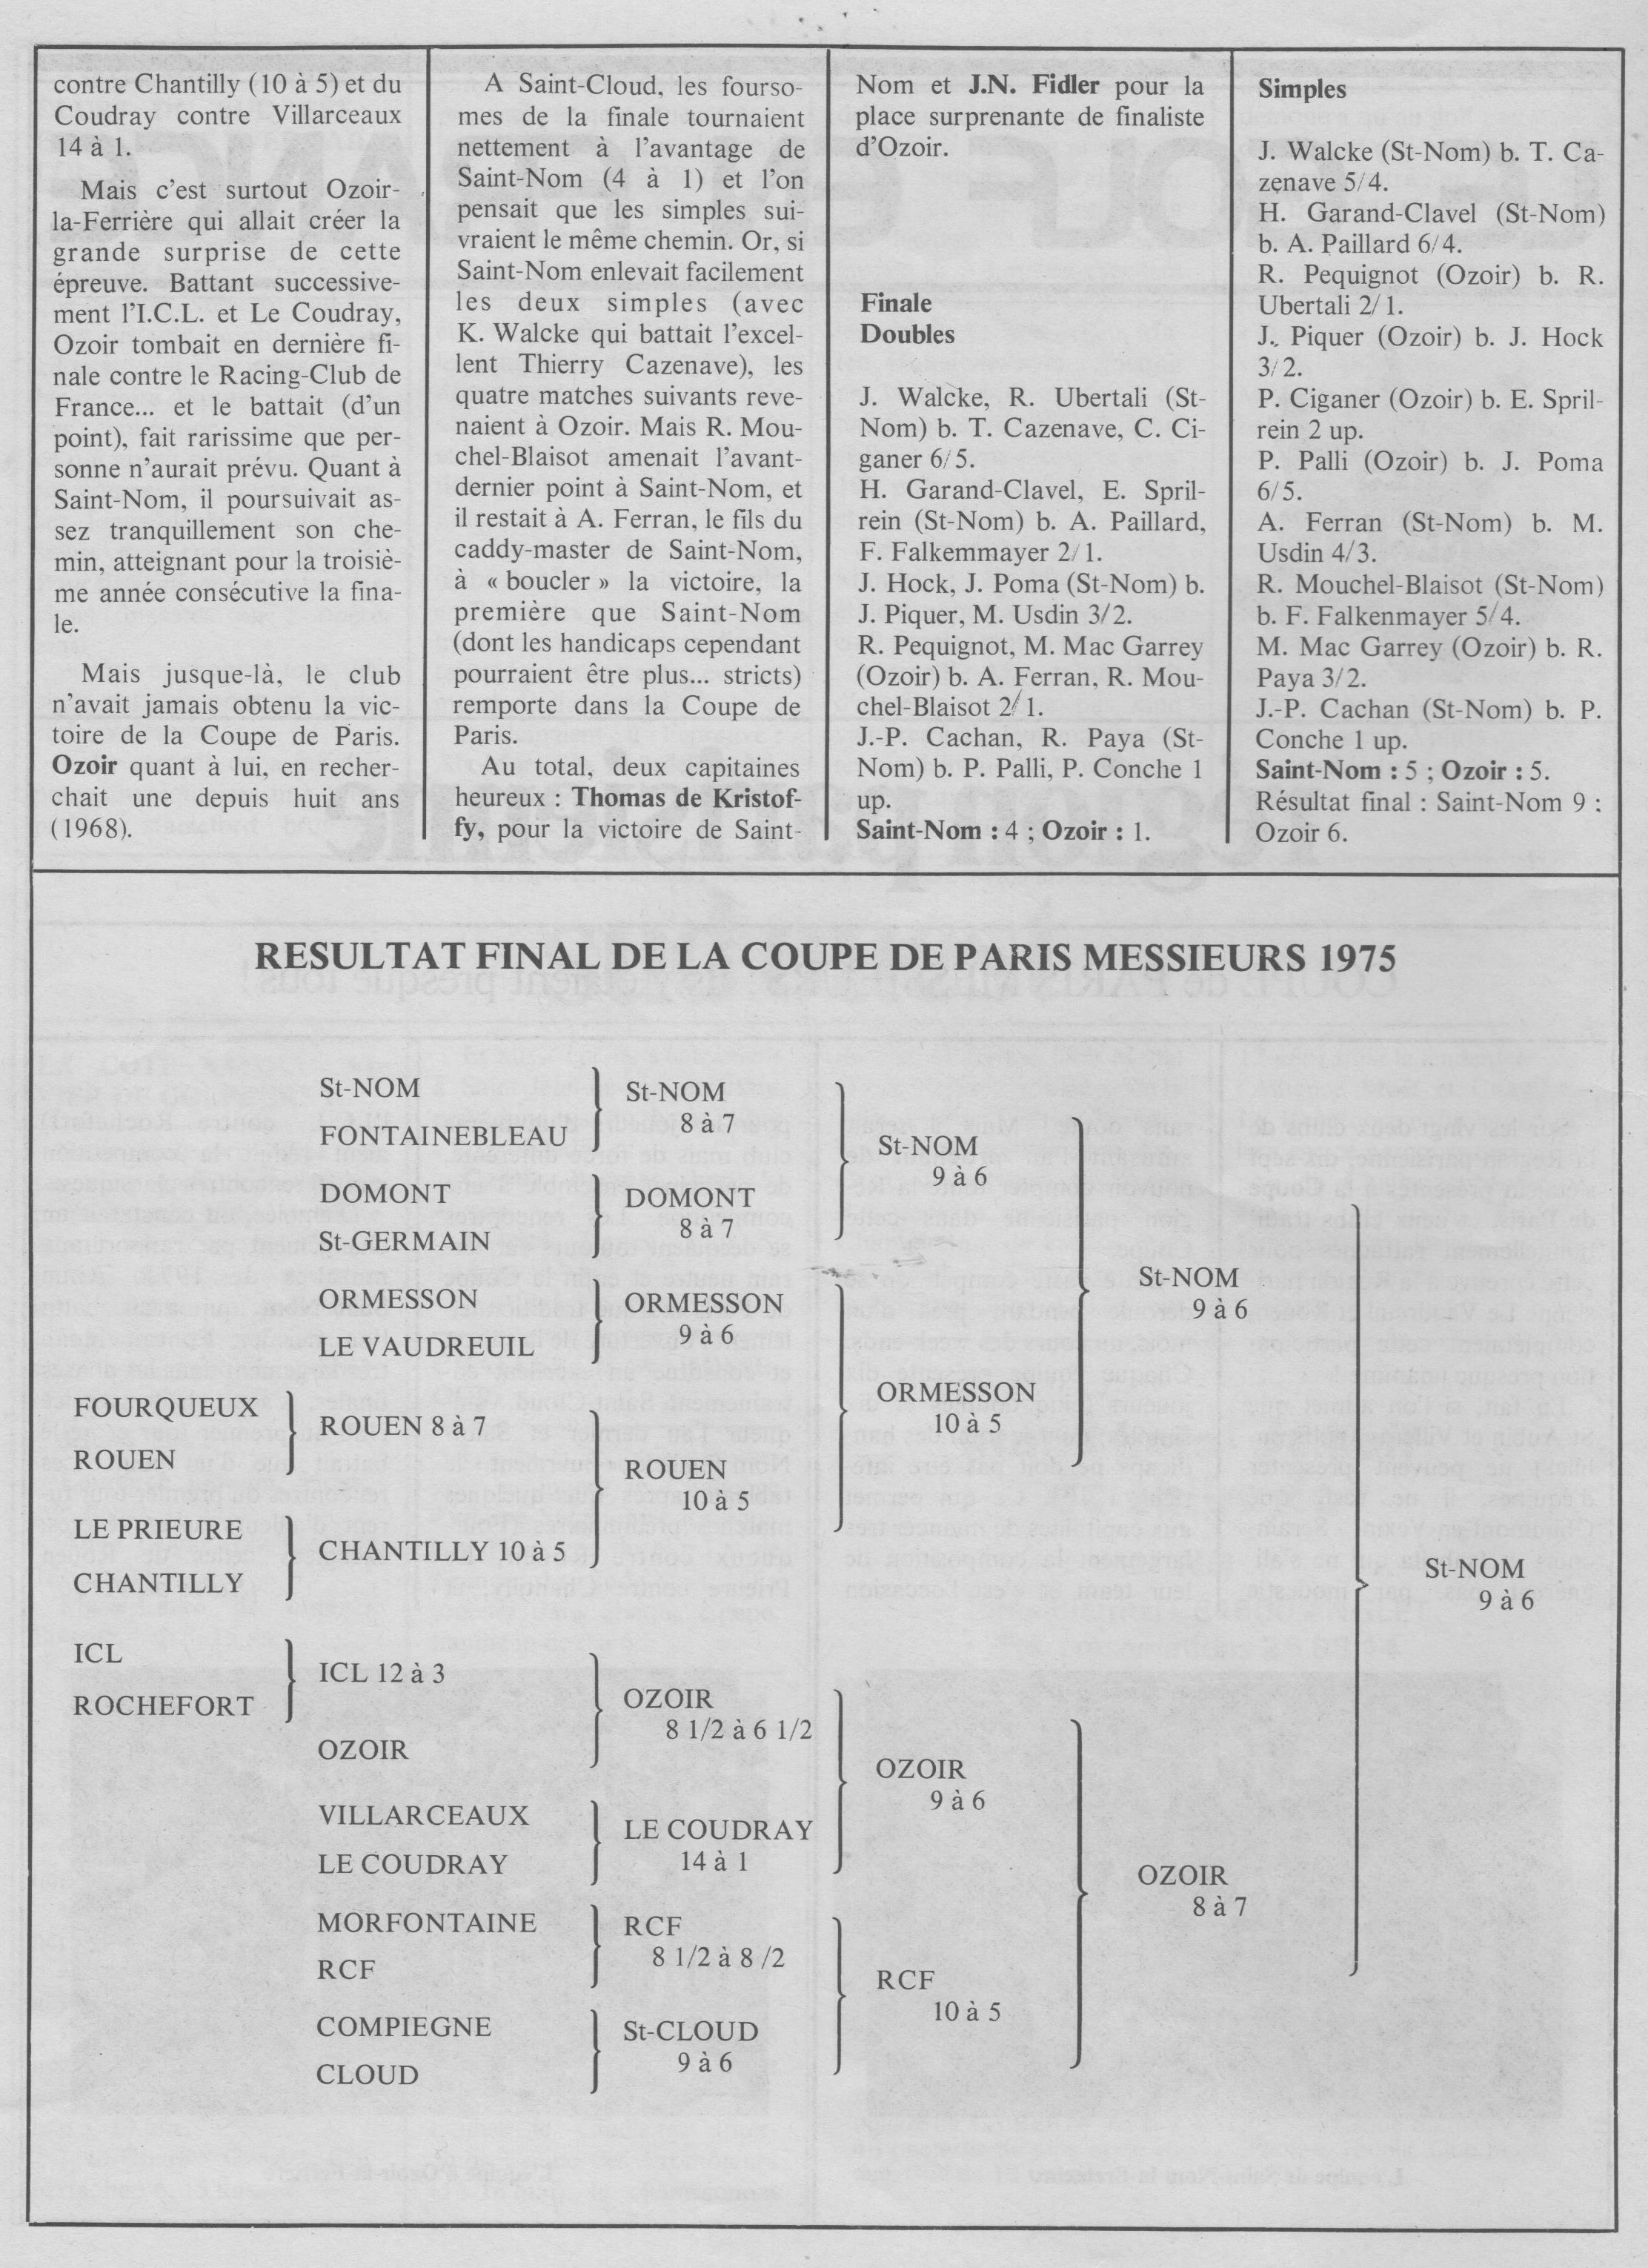 Ozoir finaliste Coupe de Paris Messieurs 1975 2